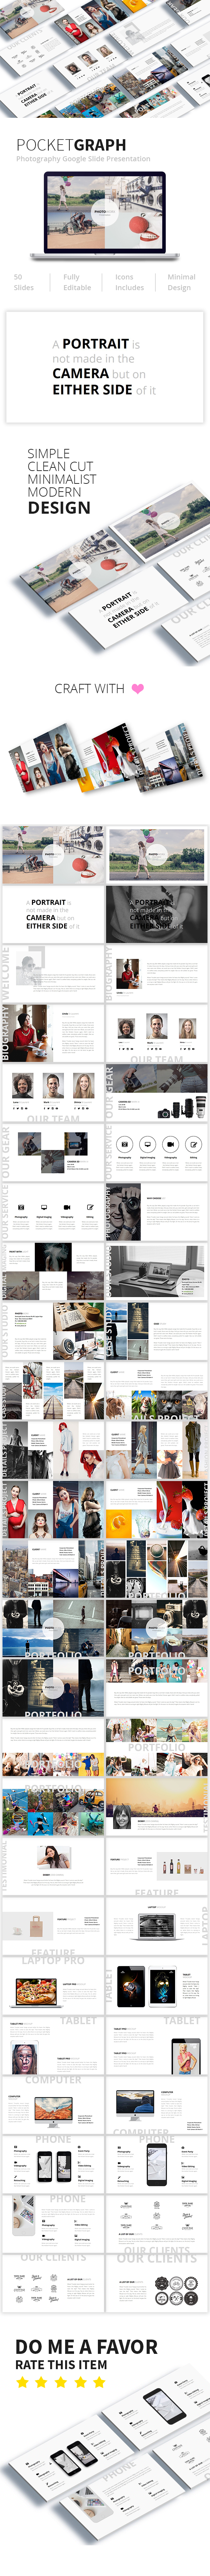 Pocketgraph Photography Google Slide  Presentation - Google Slides Presentation Templates